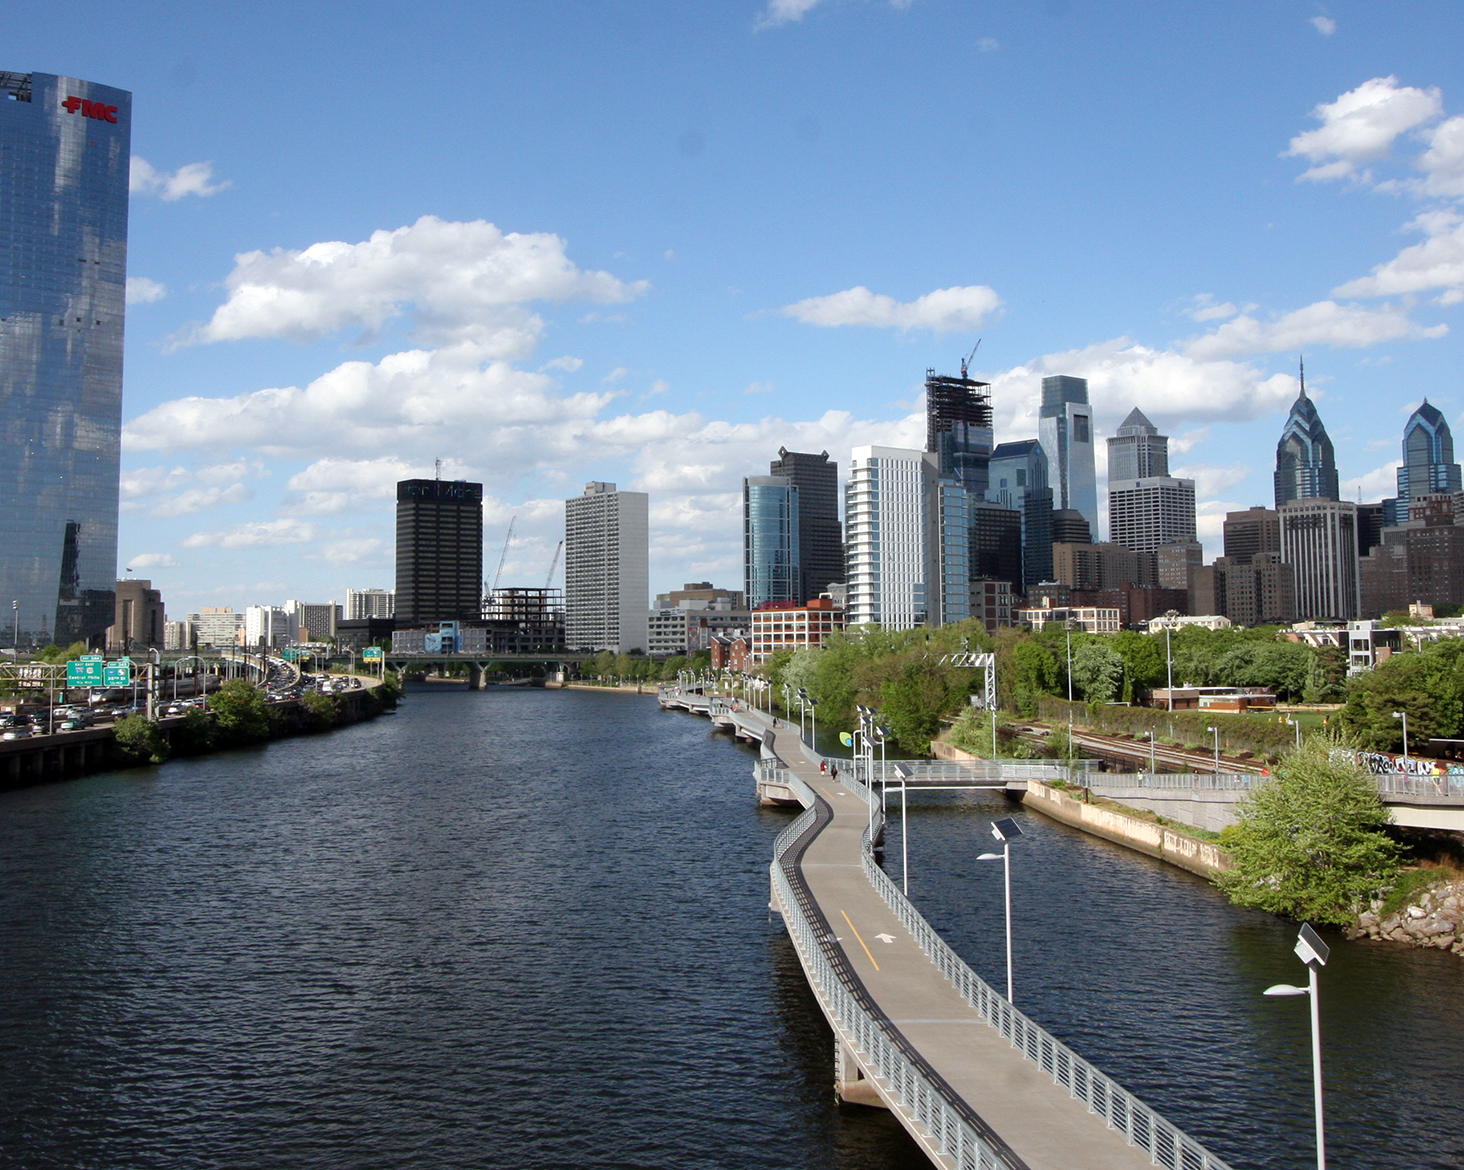 In the foreground is the Schuylkill river with a road spanning over it. In the distance is the Philadelphia skyline